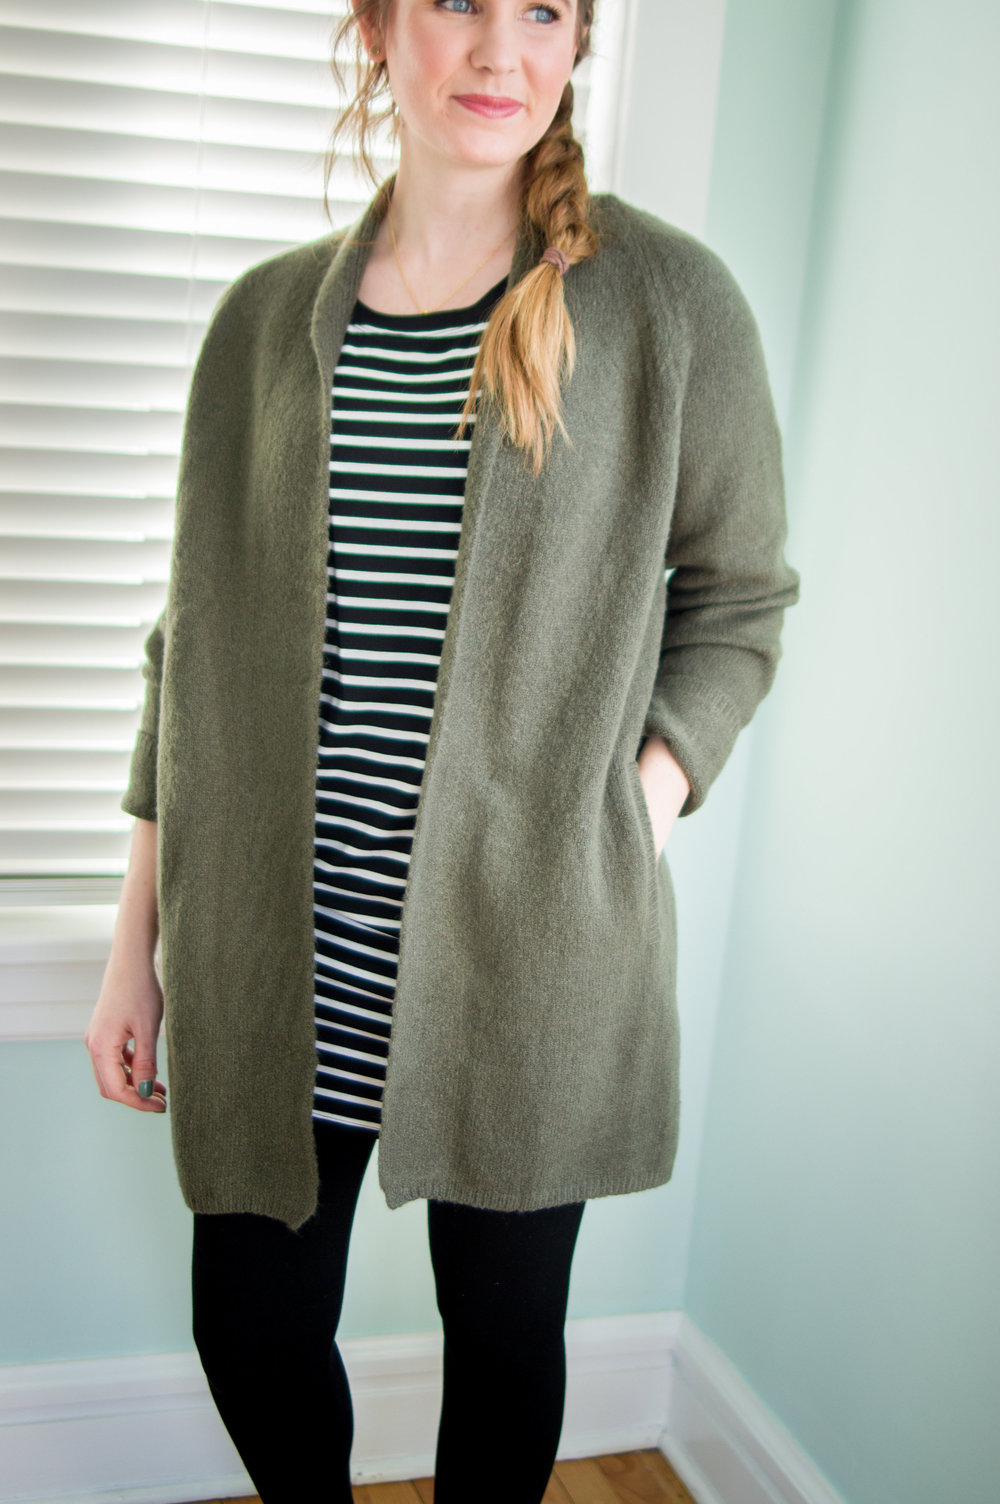 Olive Sweater: $40 Striped Tunic: $28 Leggings: $32